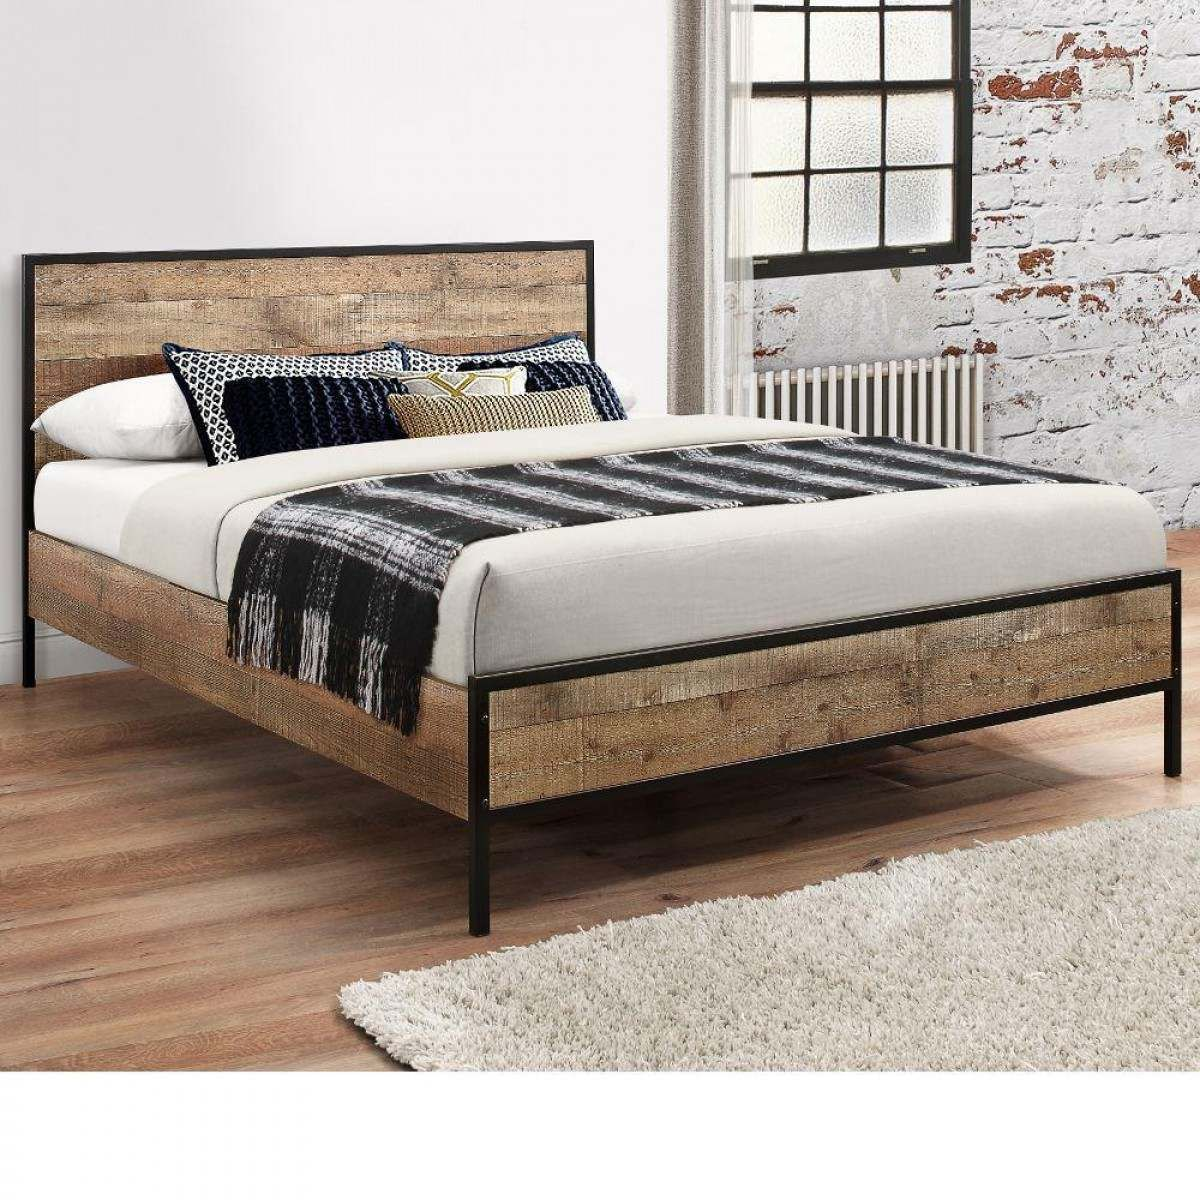 Urban Rustic Wooden And Metal Bed Rustic Wooden Bed Wooden King